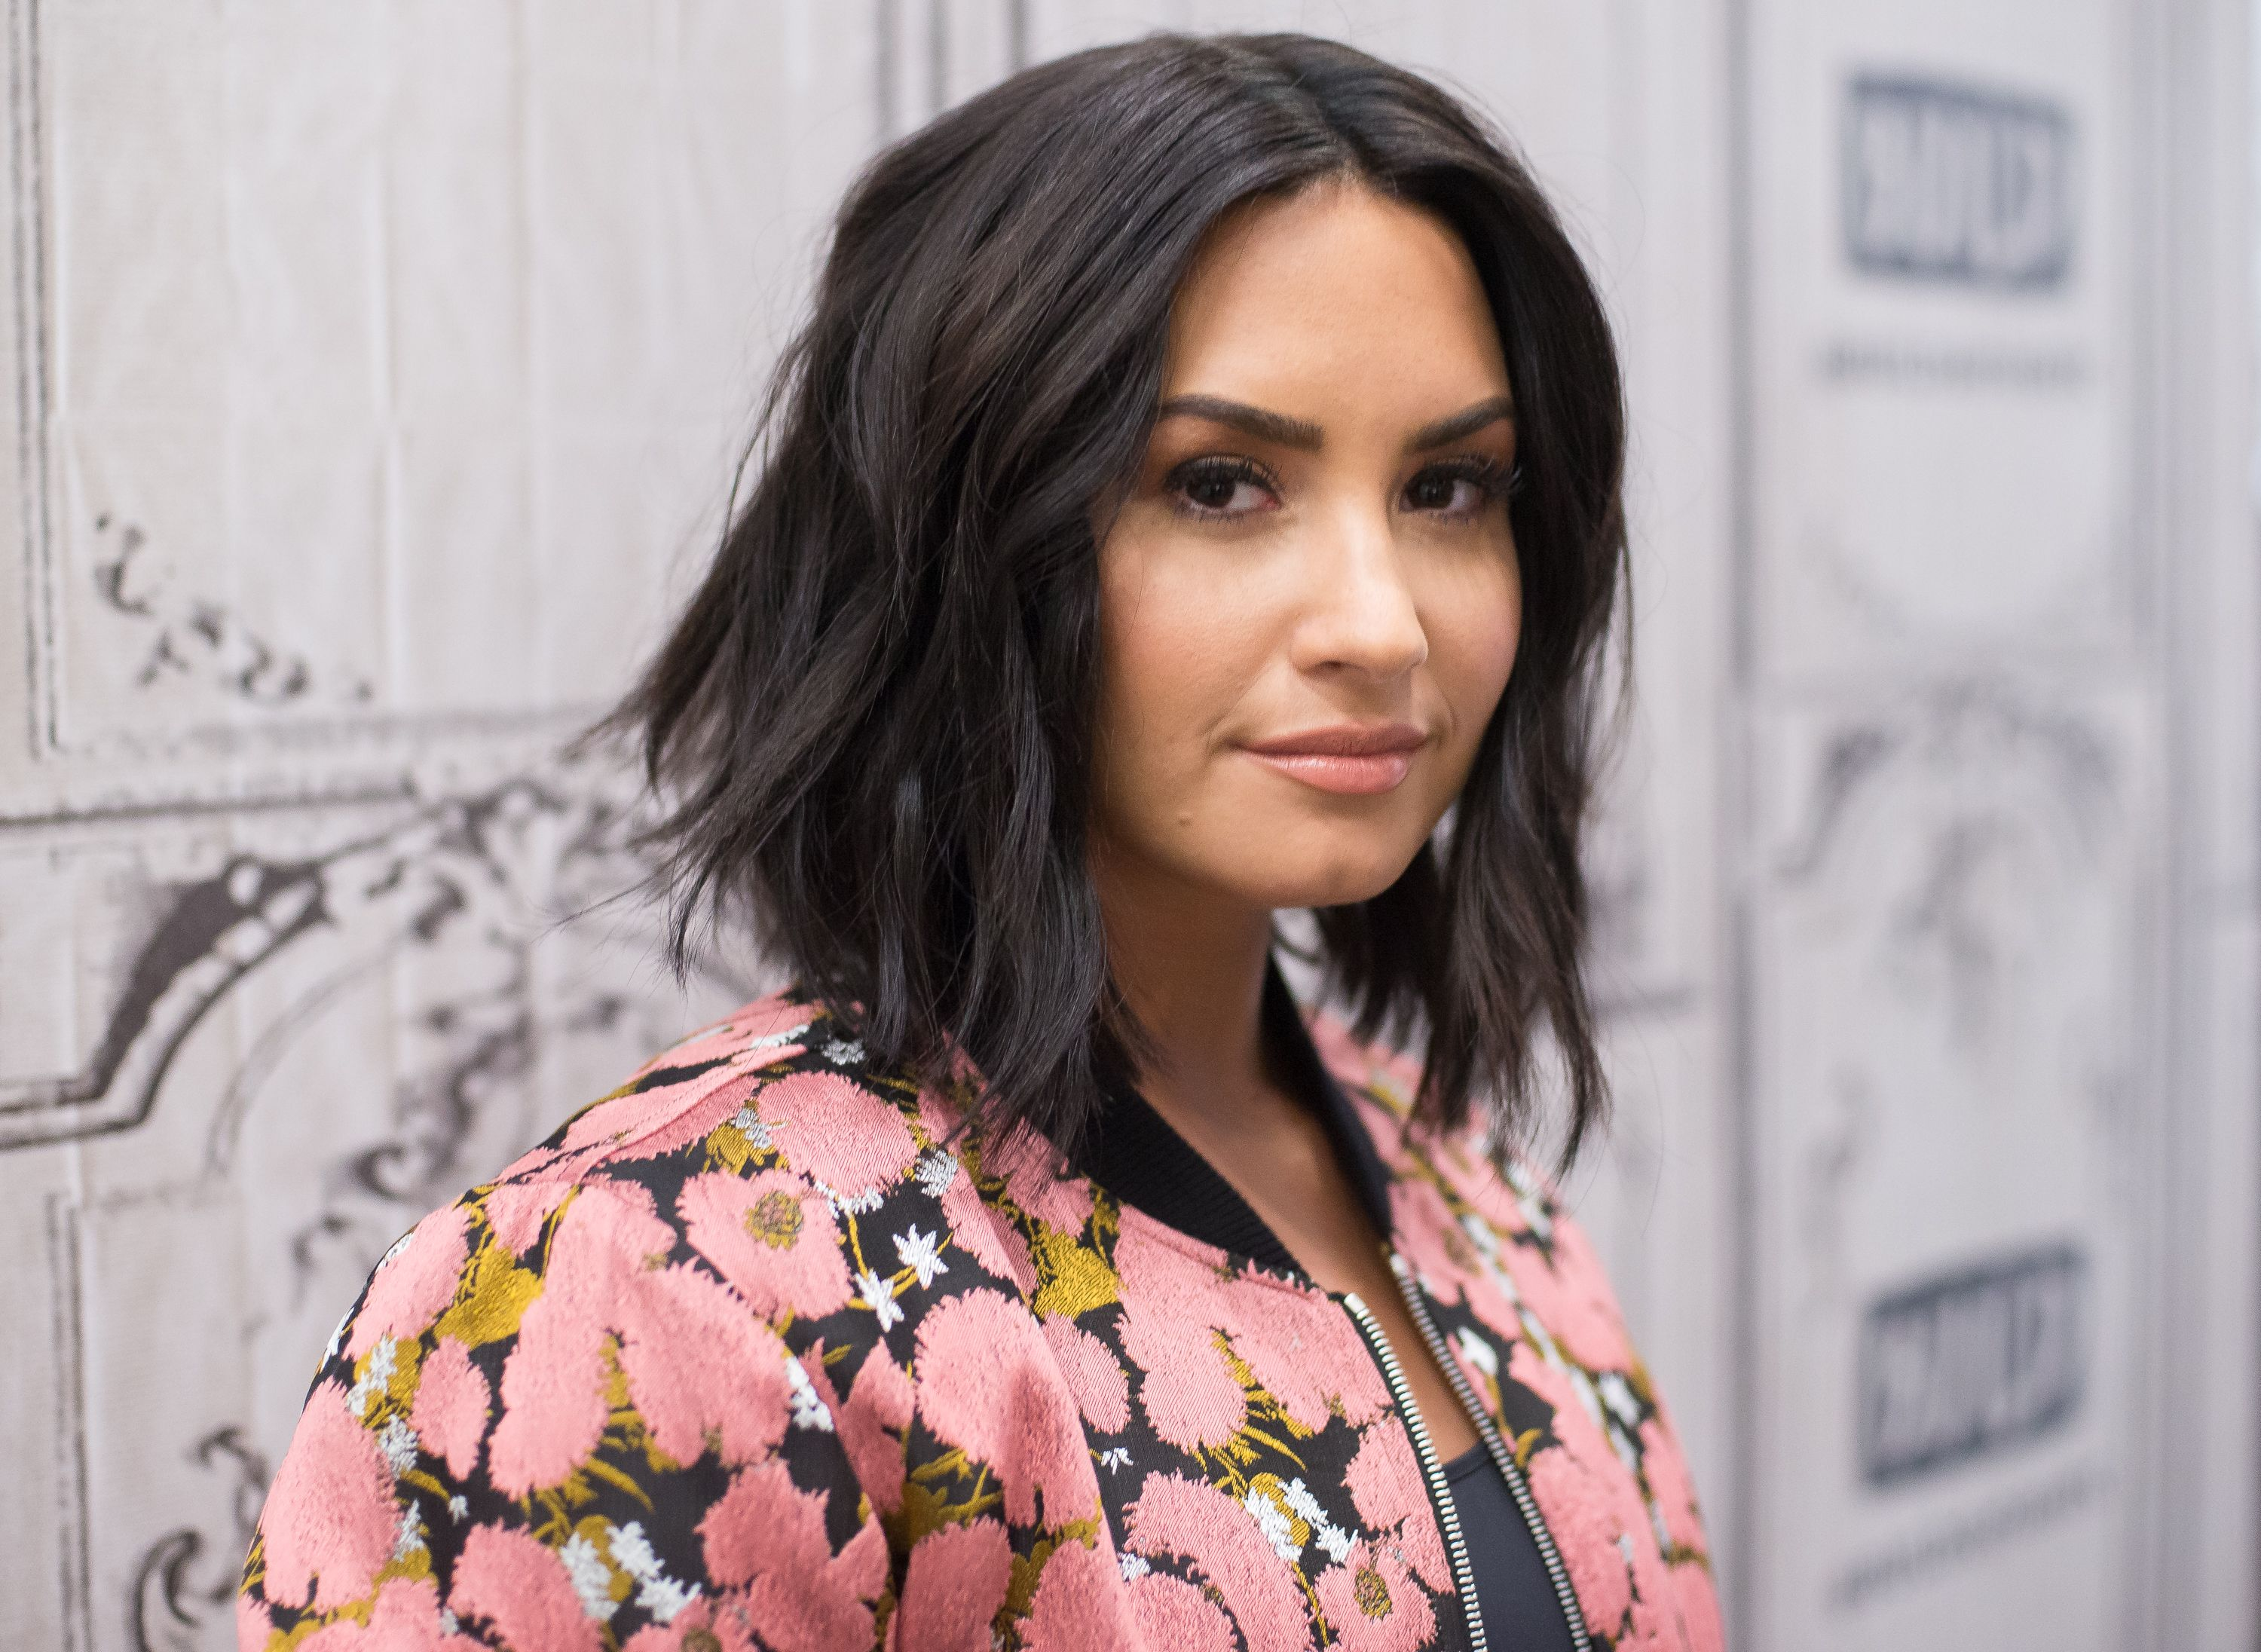 Demi Lovato Posts Instagram Letter After Overdose Hospitalization